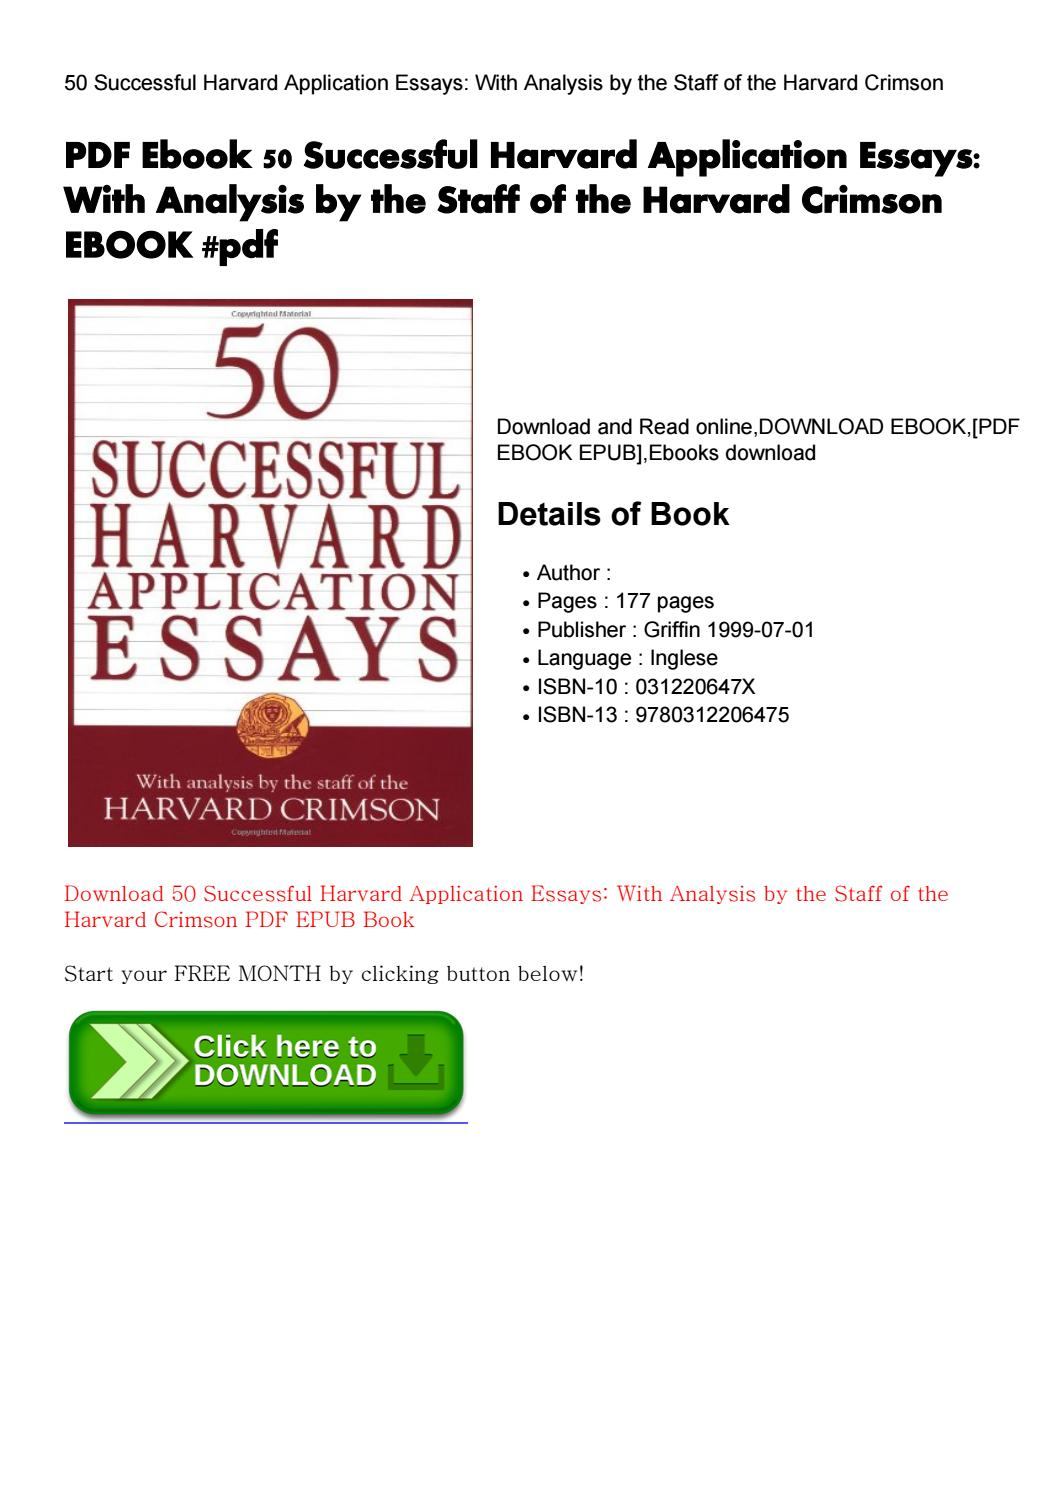 001 Successful Harvard Application Essays Pdf Page 1 Essay Impressive 50 Free 4th Edition Download Full